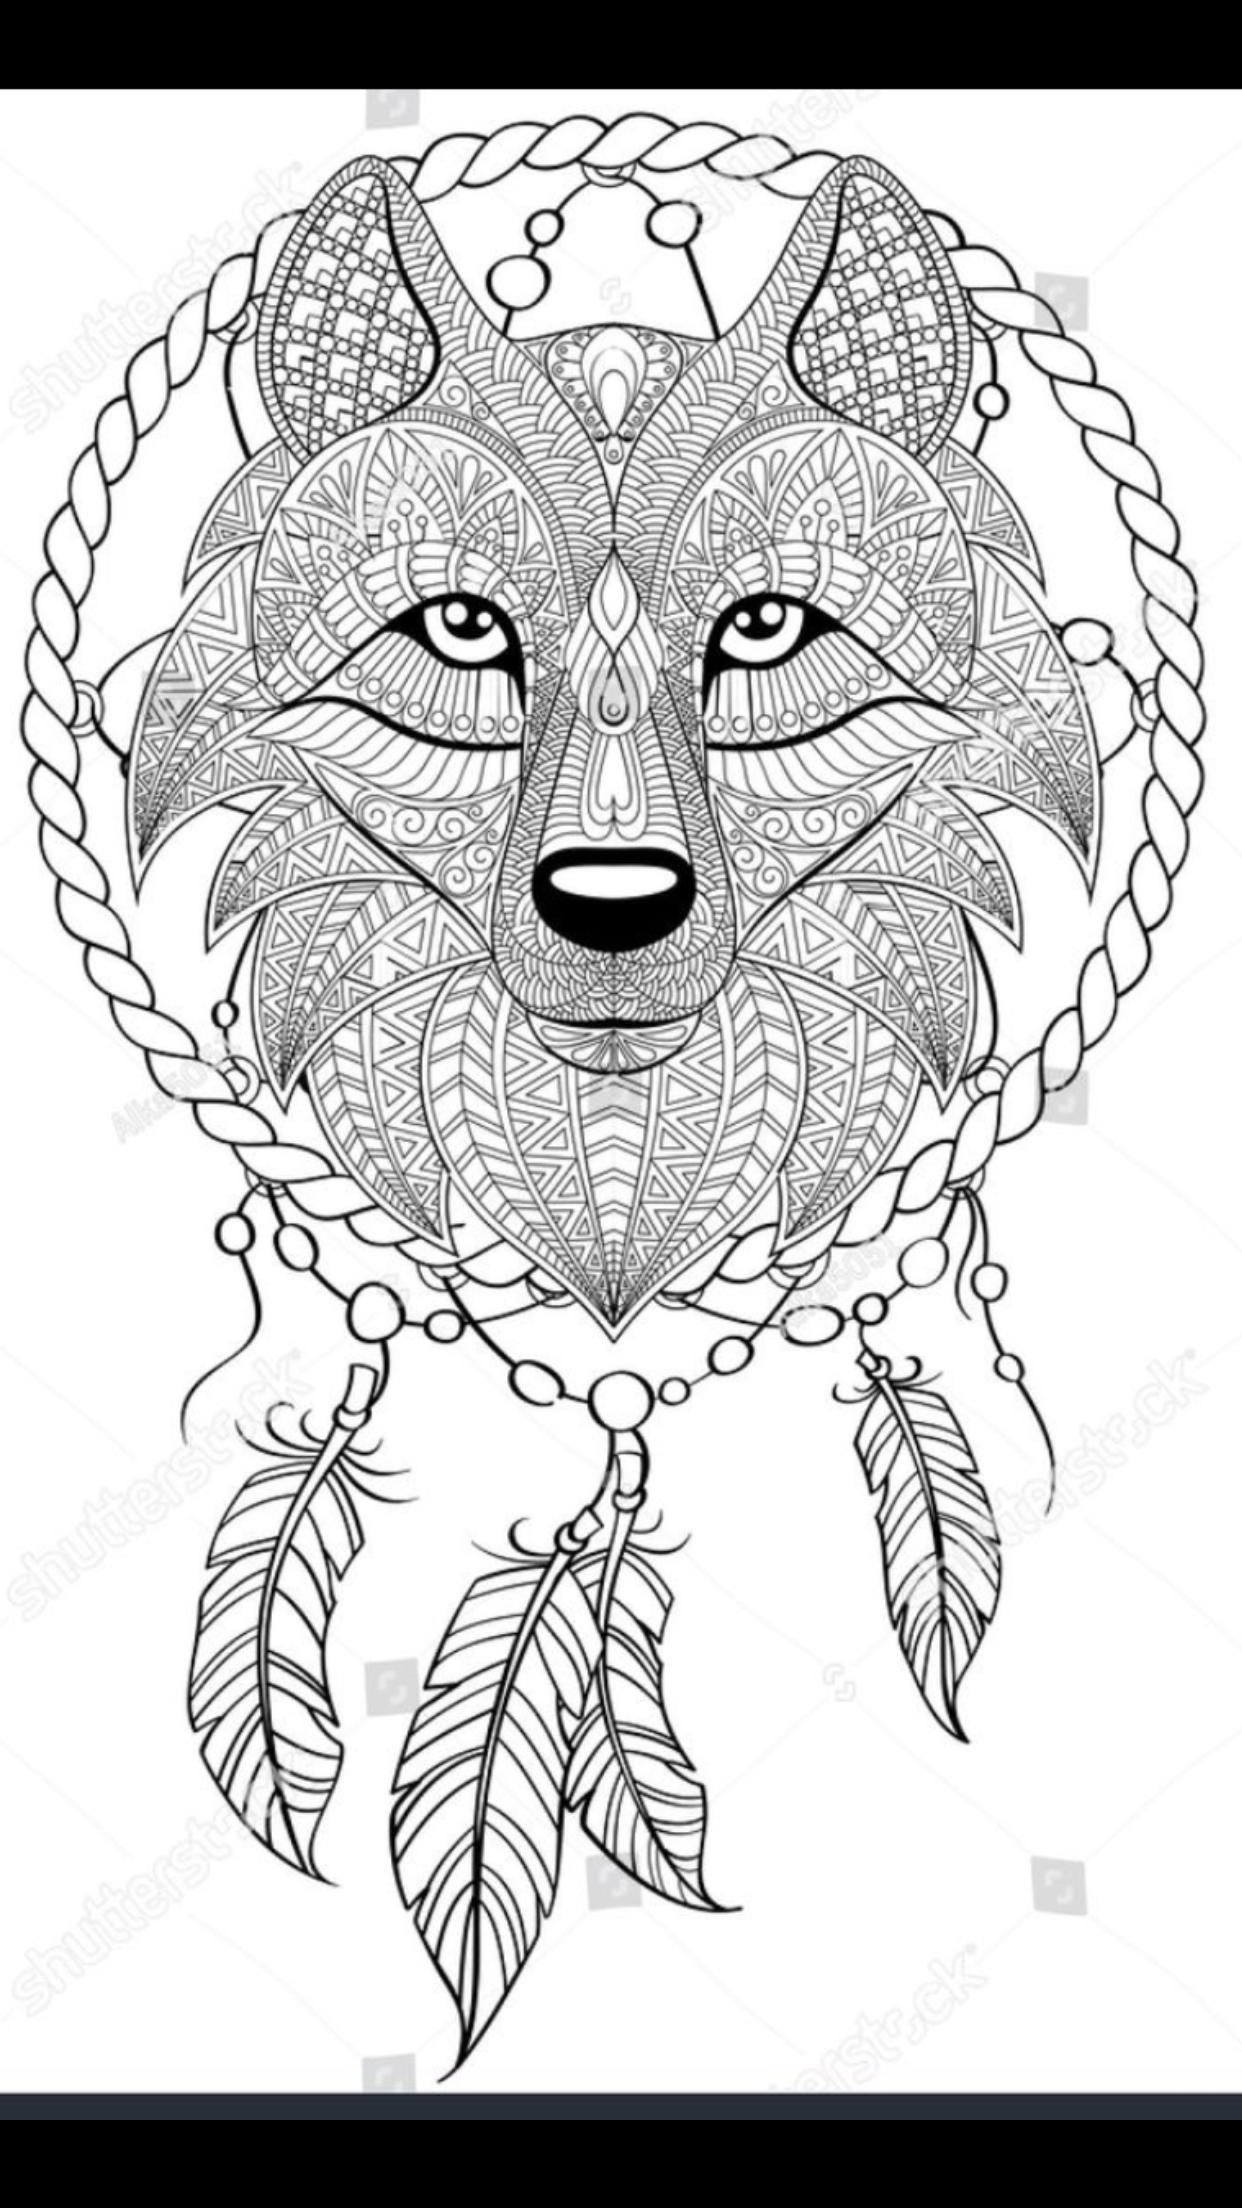 pin von helyn wright auf dream catcher coloring pages